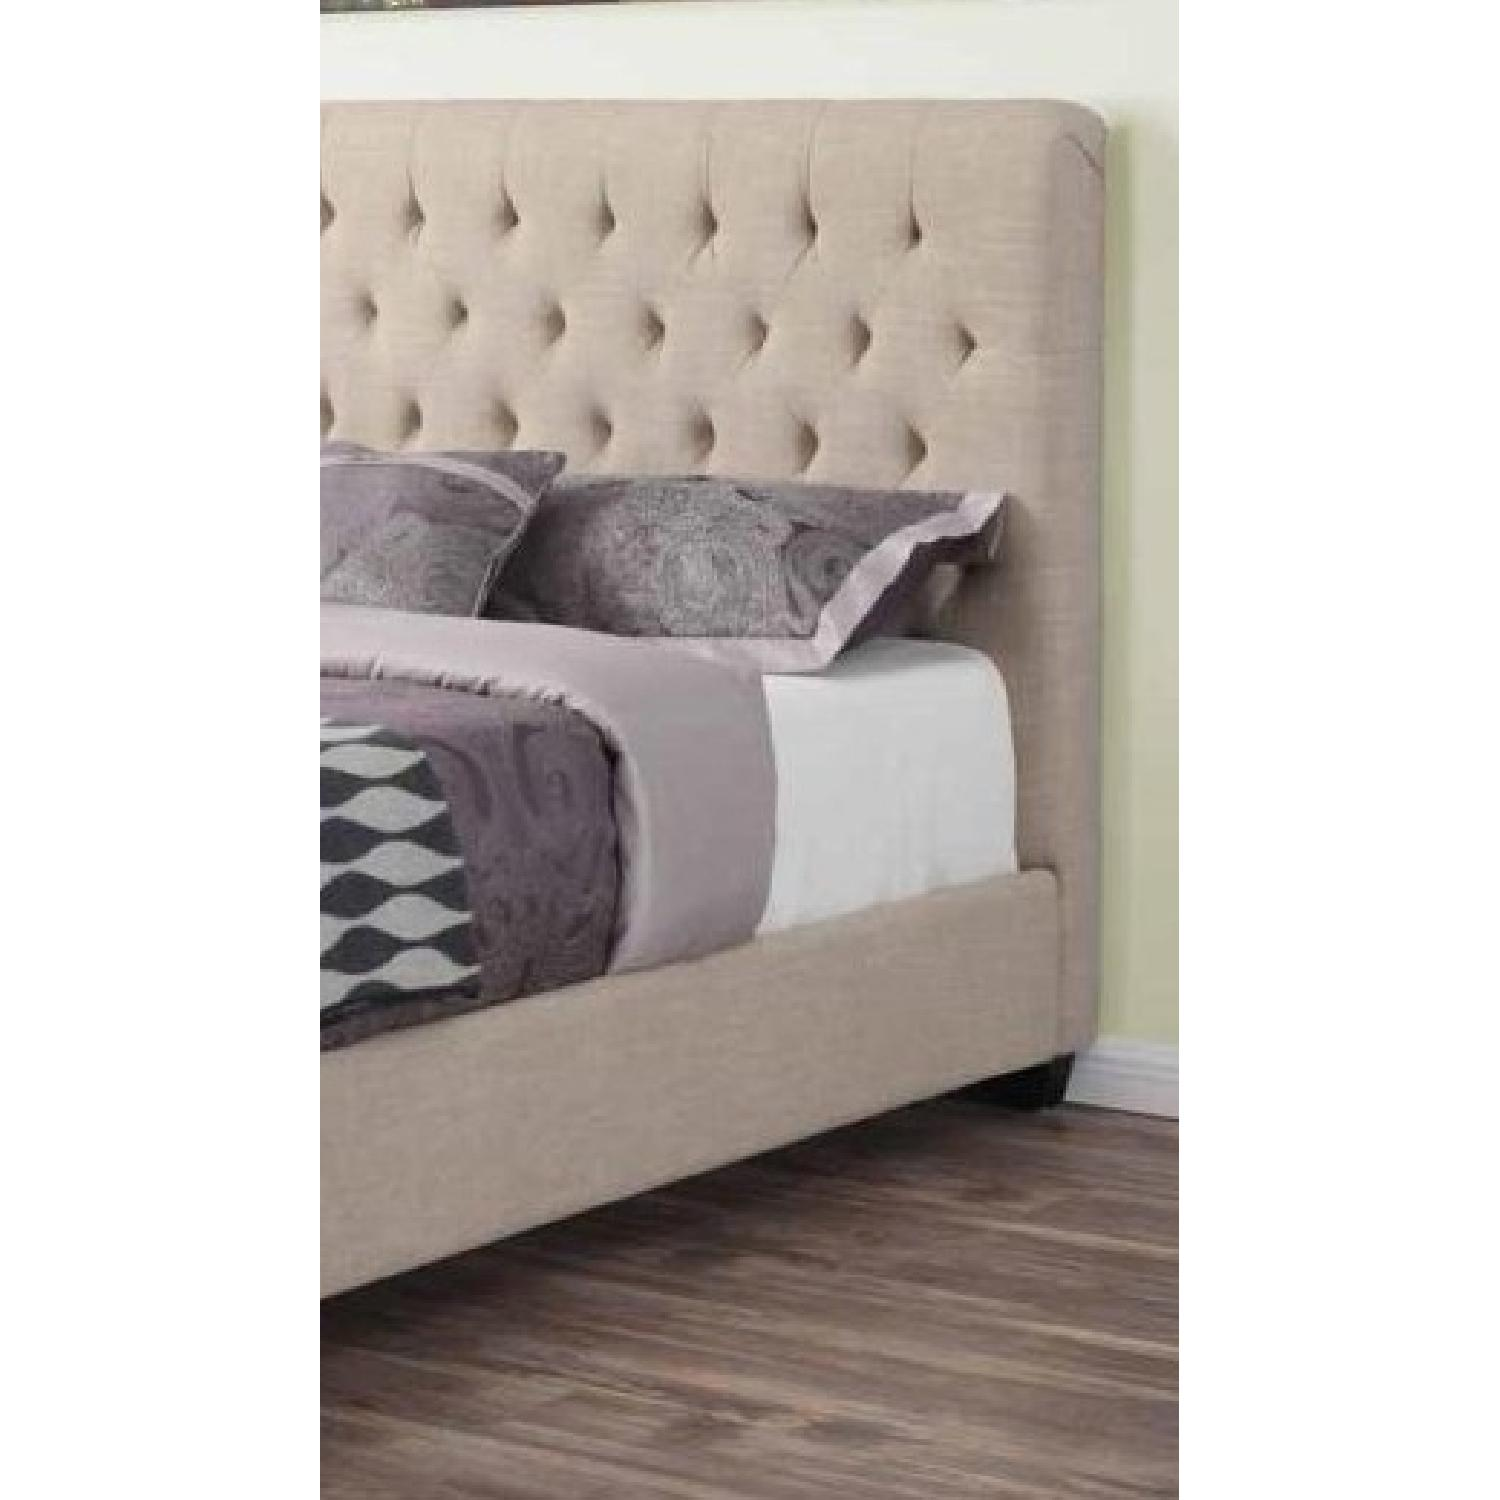 Modern Queen Fabric Upholstered Bed w/ Tufted Headboard in Oak Meal Fabric - image-3